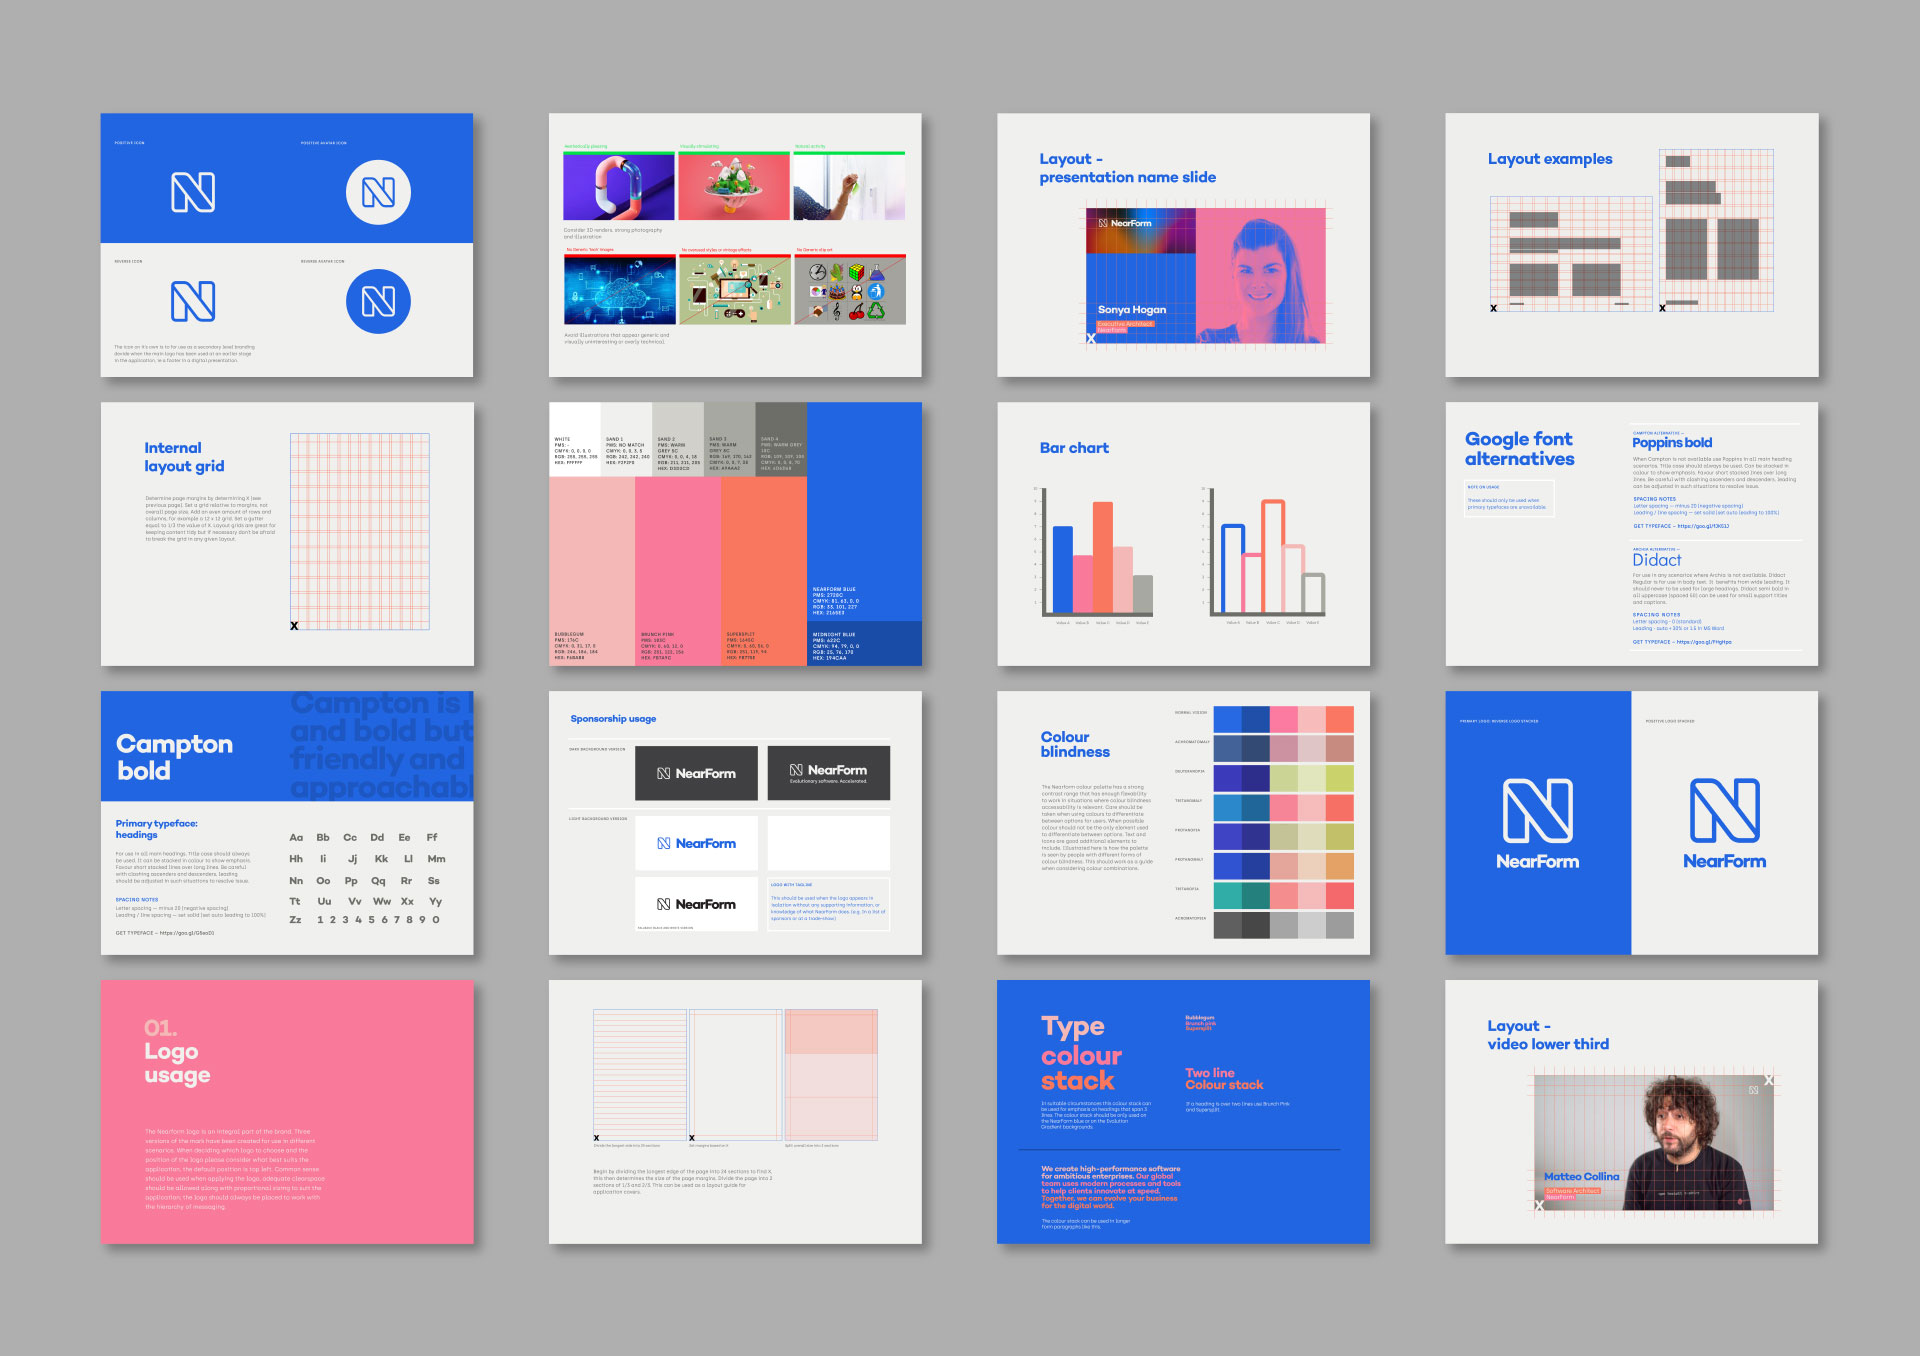 NF_brand-guidelines-02_web